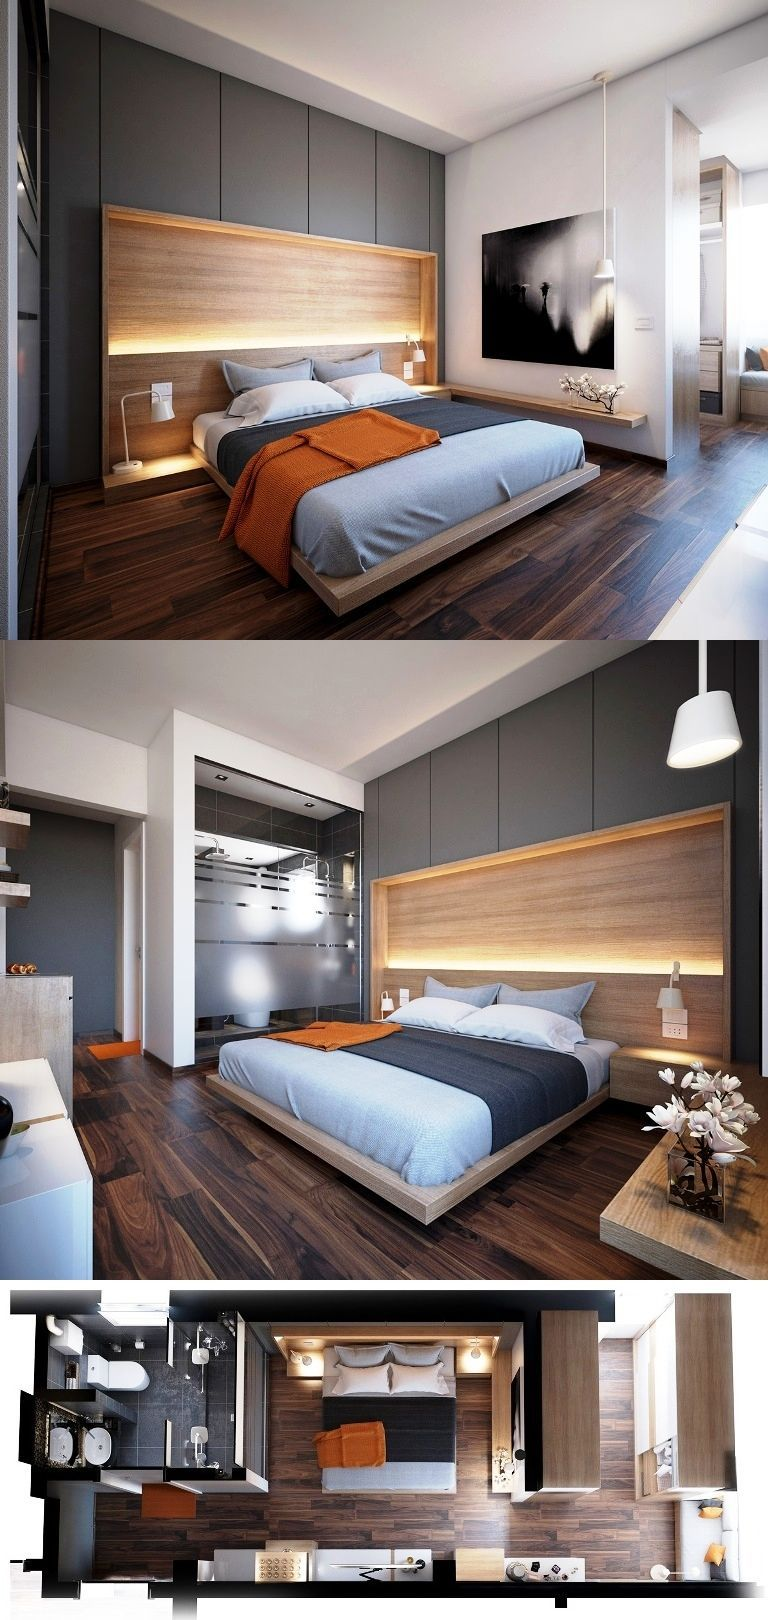 Modern Hotel Room: 15+ Refreshing Master Bedroom Design Ideas For Renovation